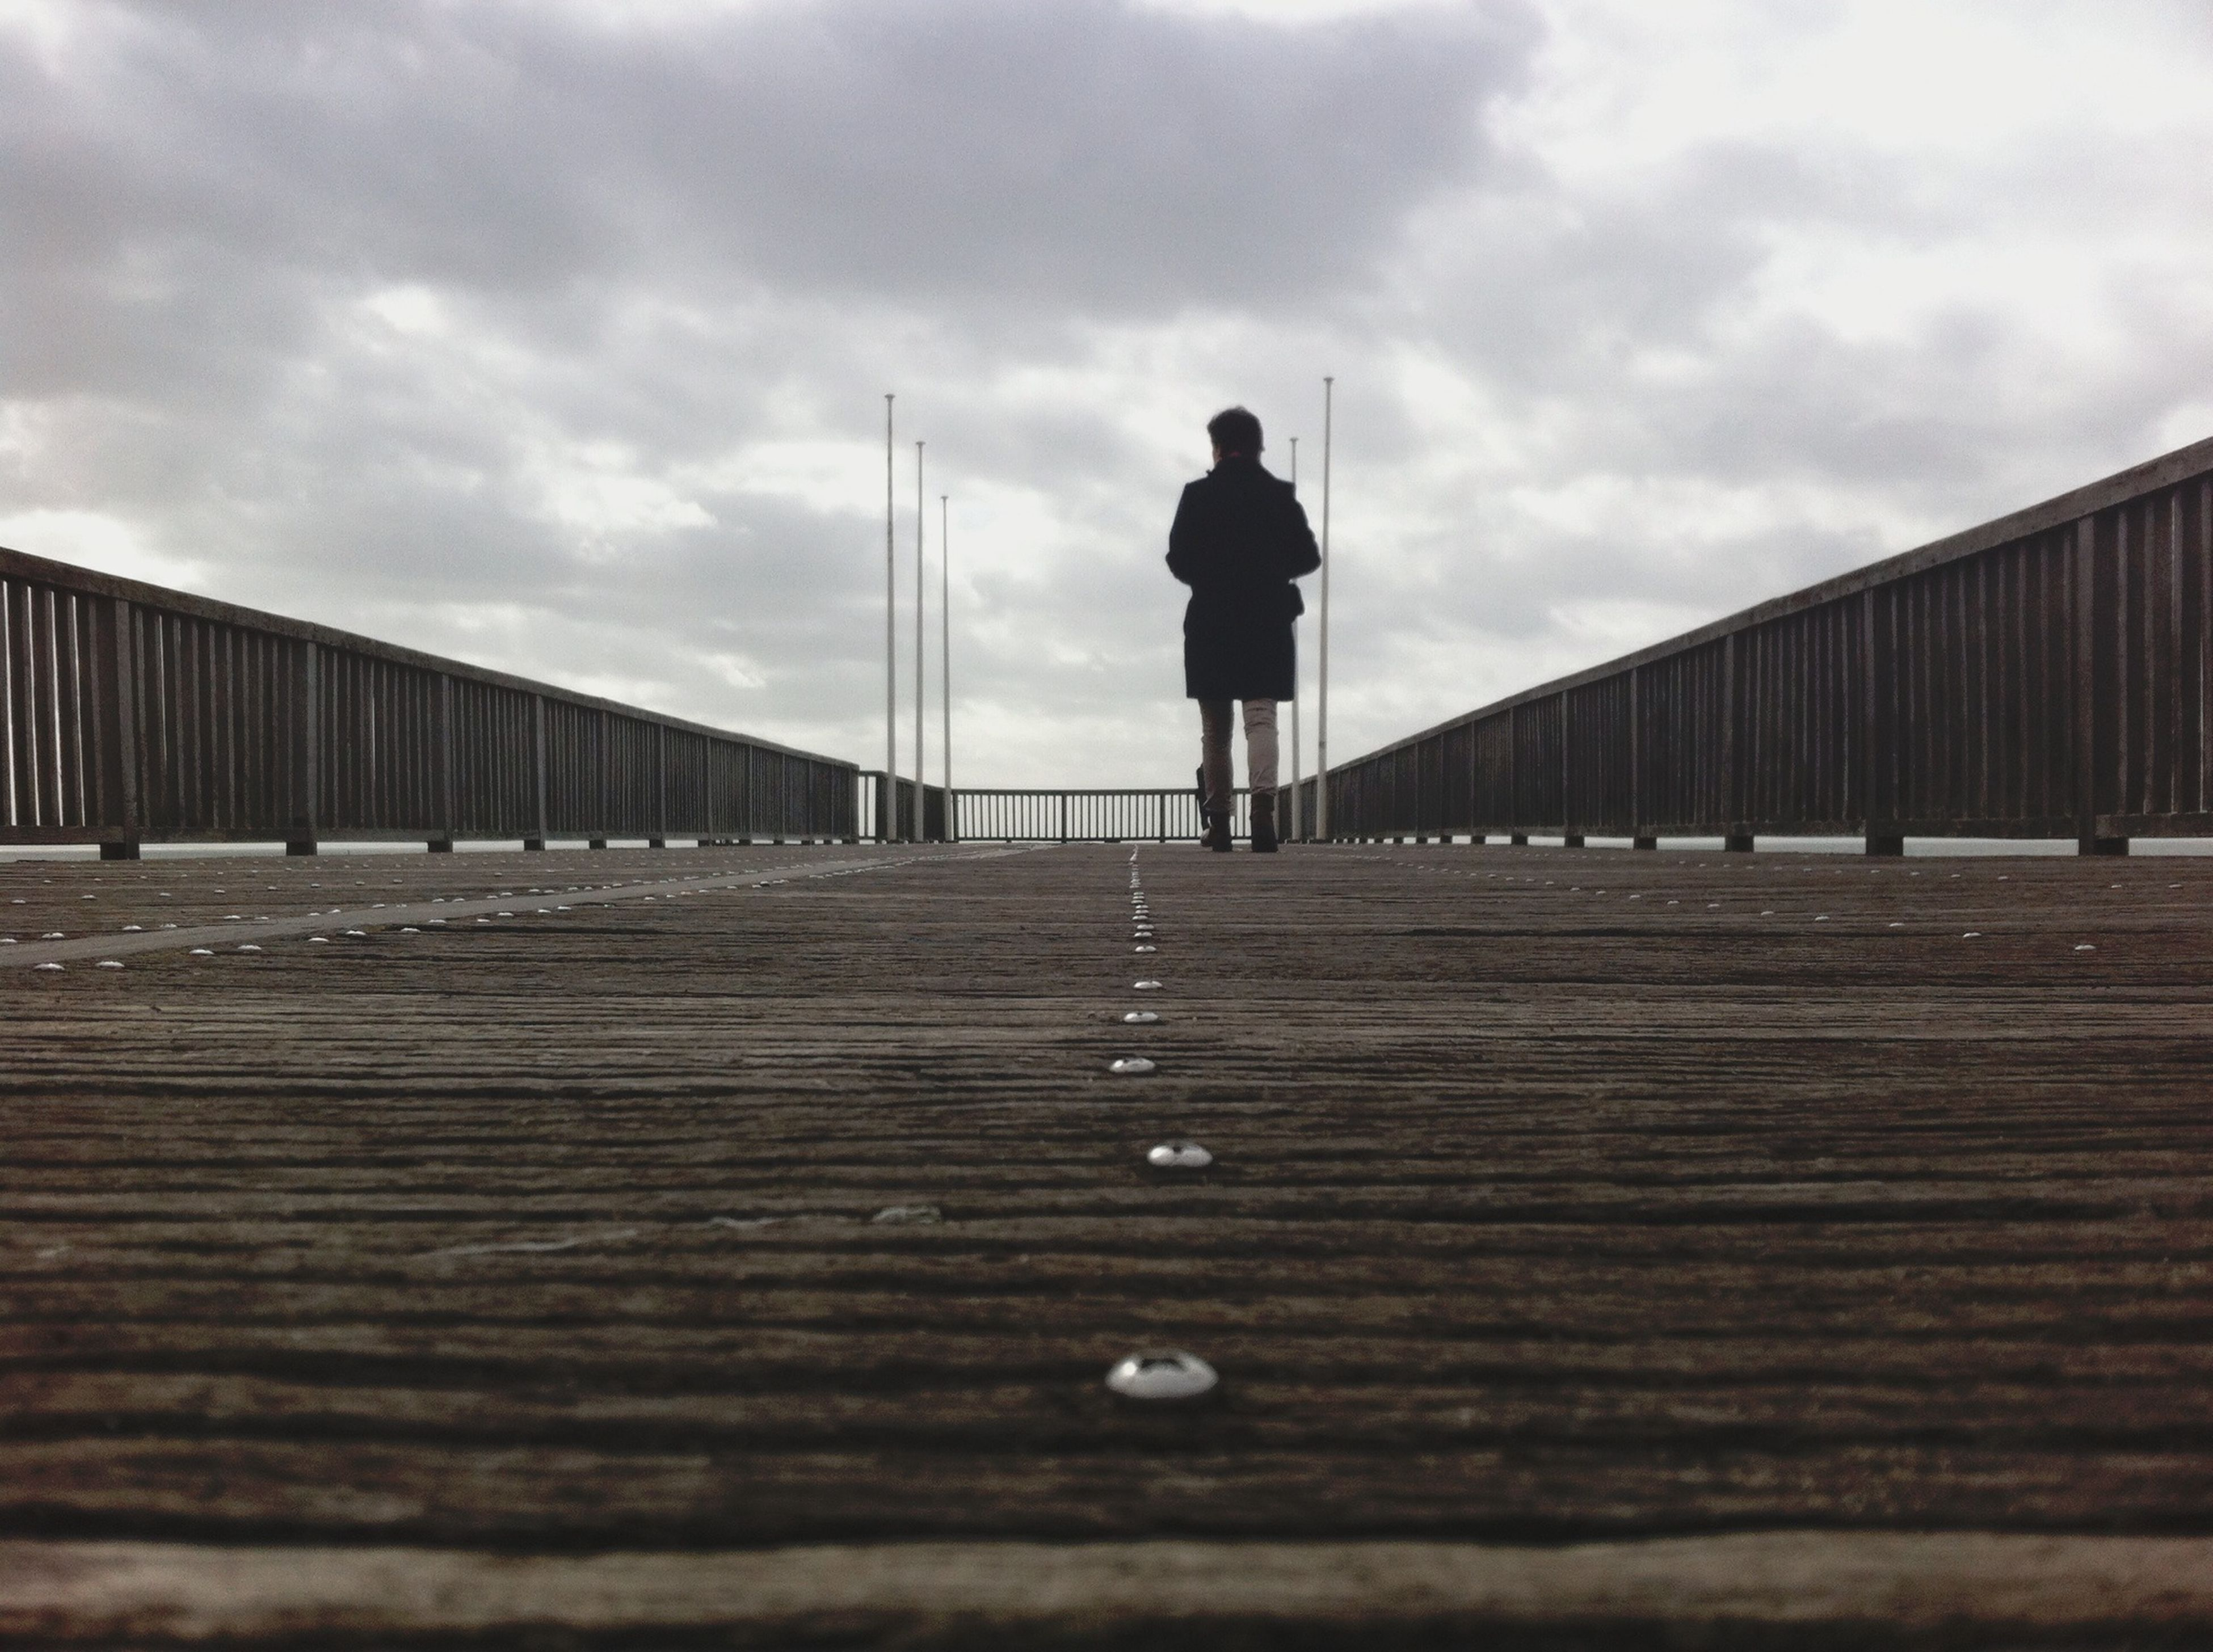 sky, rear view, built structure, railing, architecture, full length, cloud - sky, the way forward, walking, standing, men, lifestyles, leisure activity, cloud, pier, cloudy, surface level, silhouette